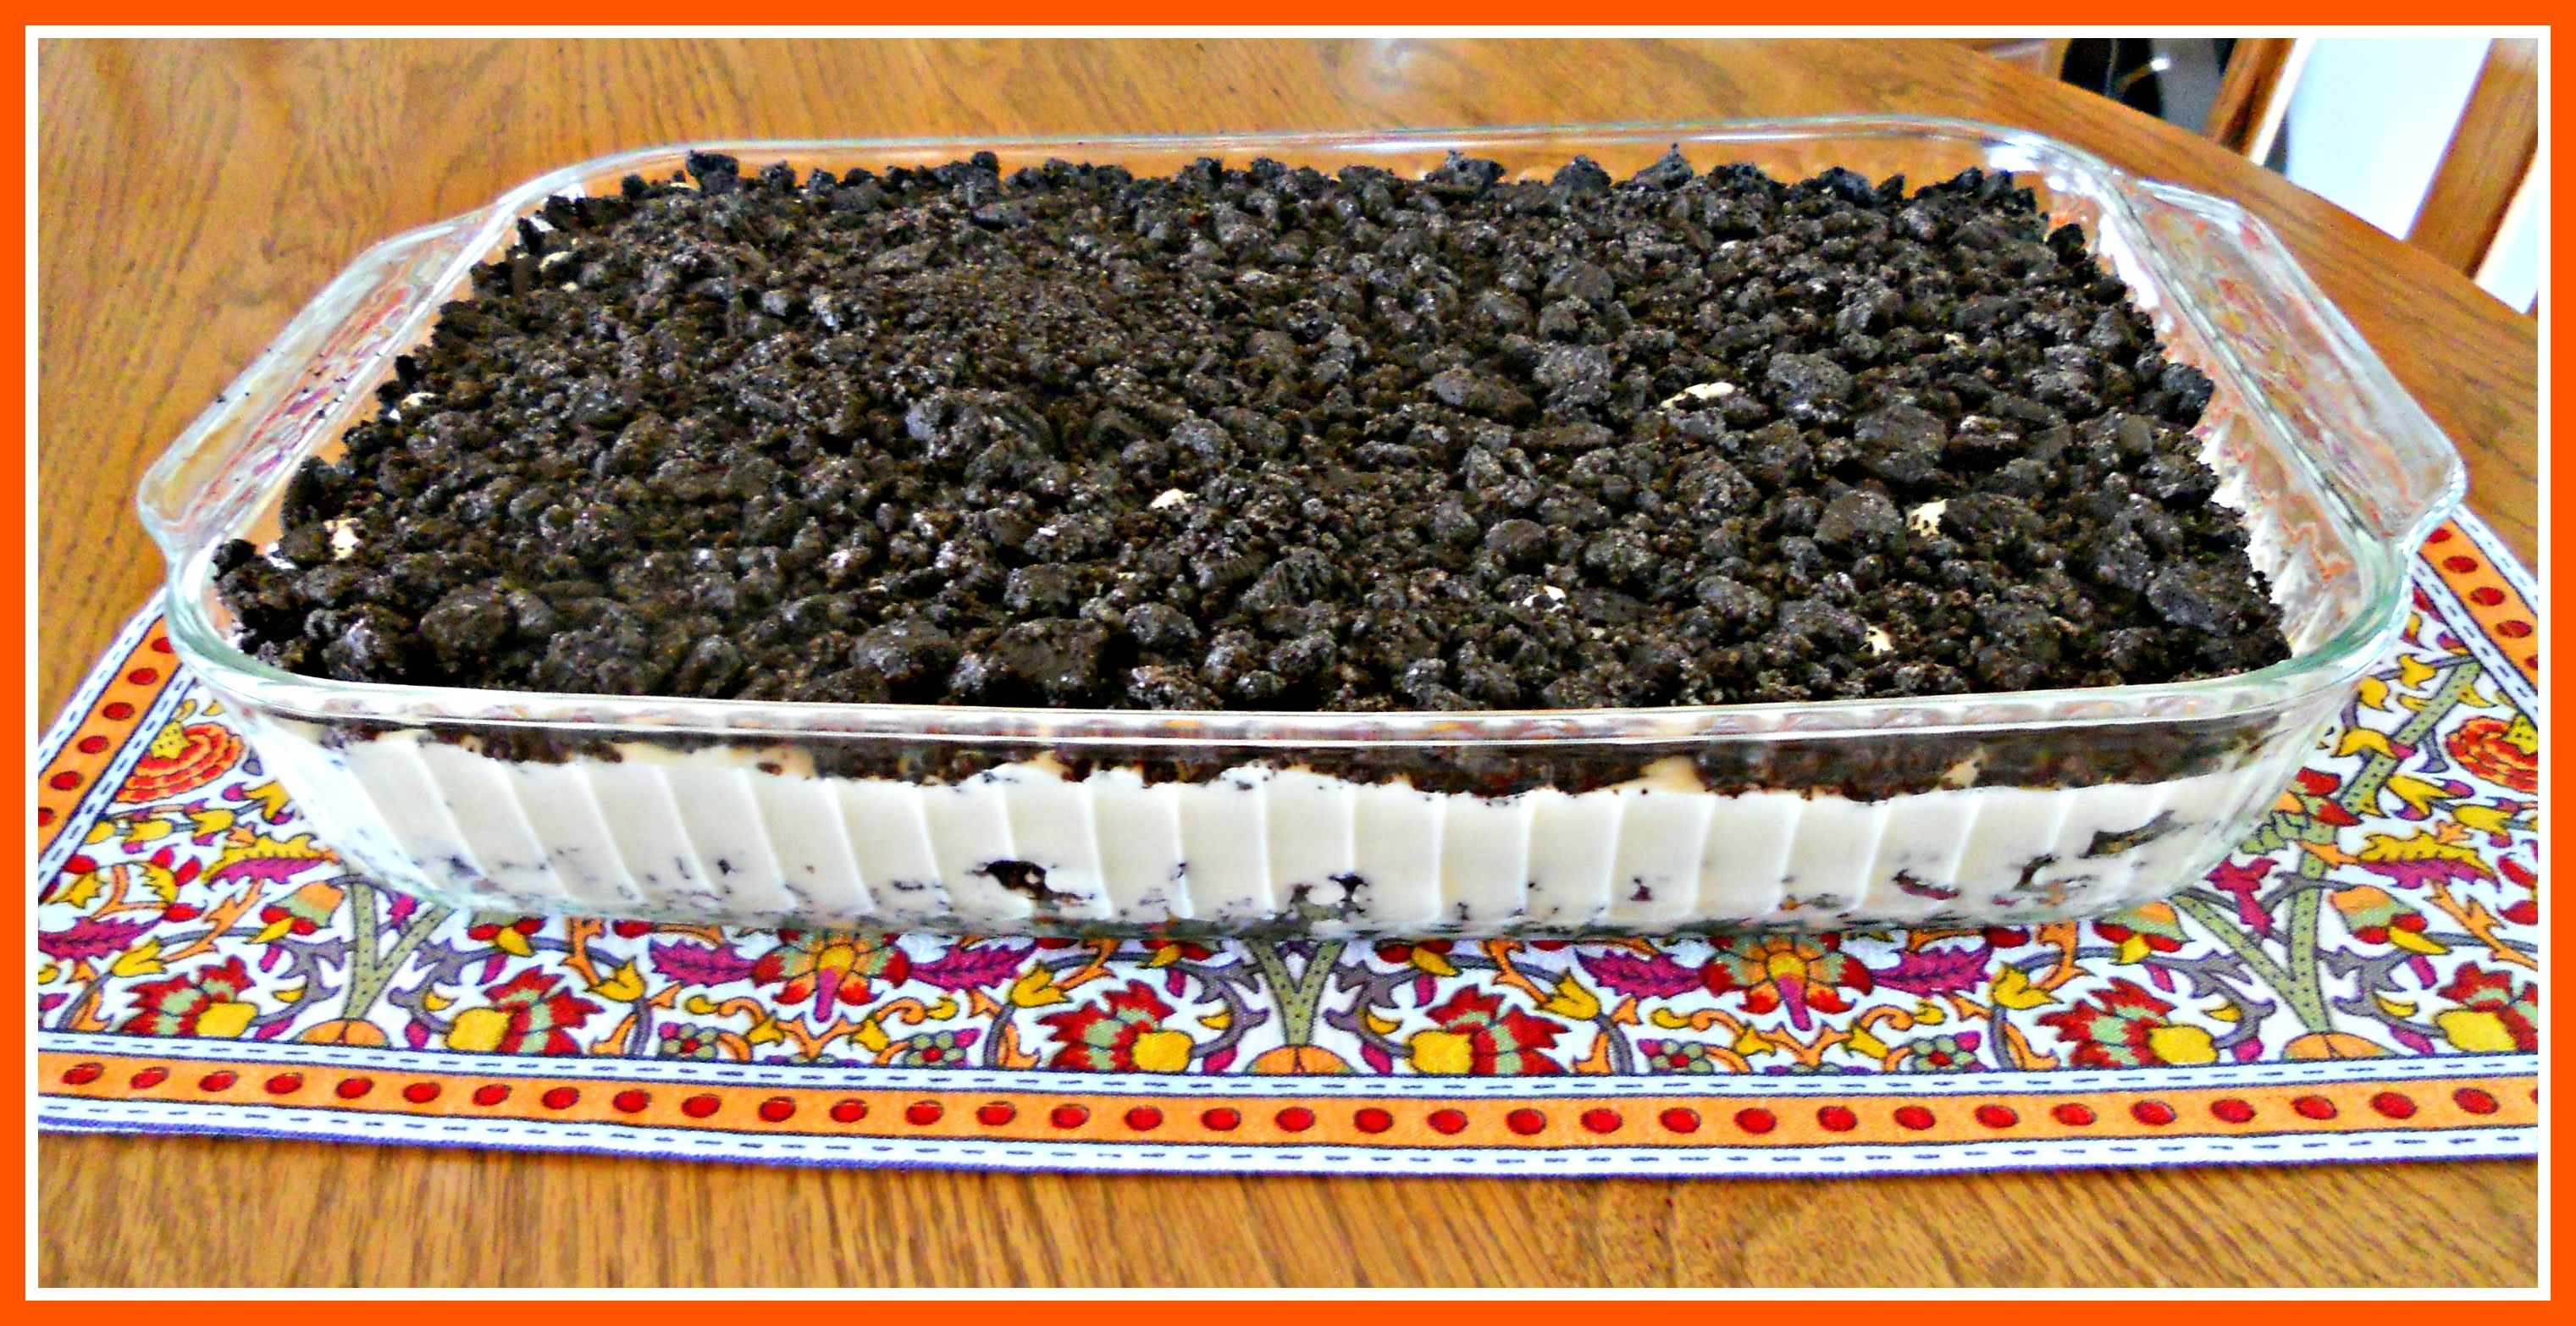 Dirt Cake PILLOWS ALAMODE